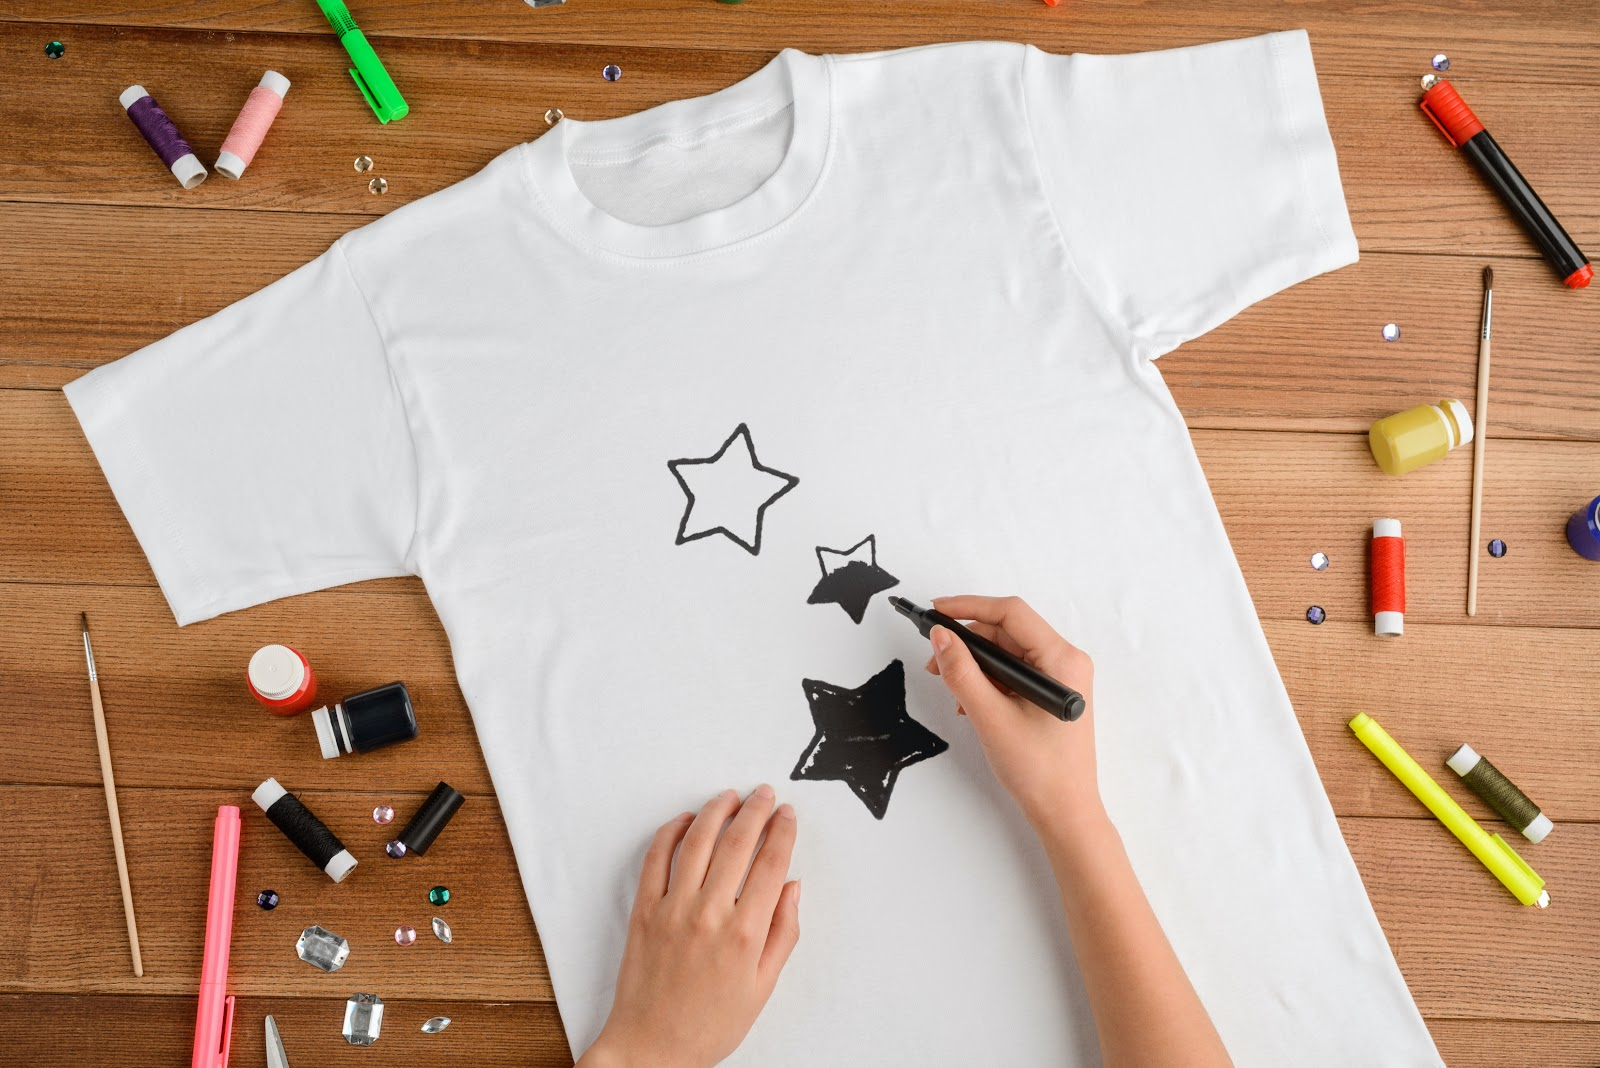 Person doodling on t-shirt